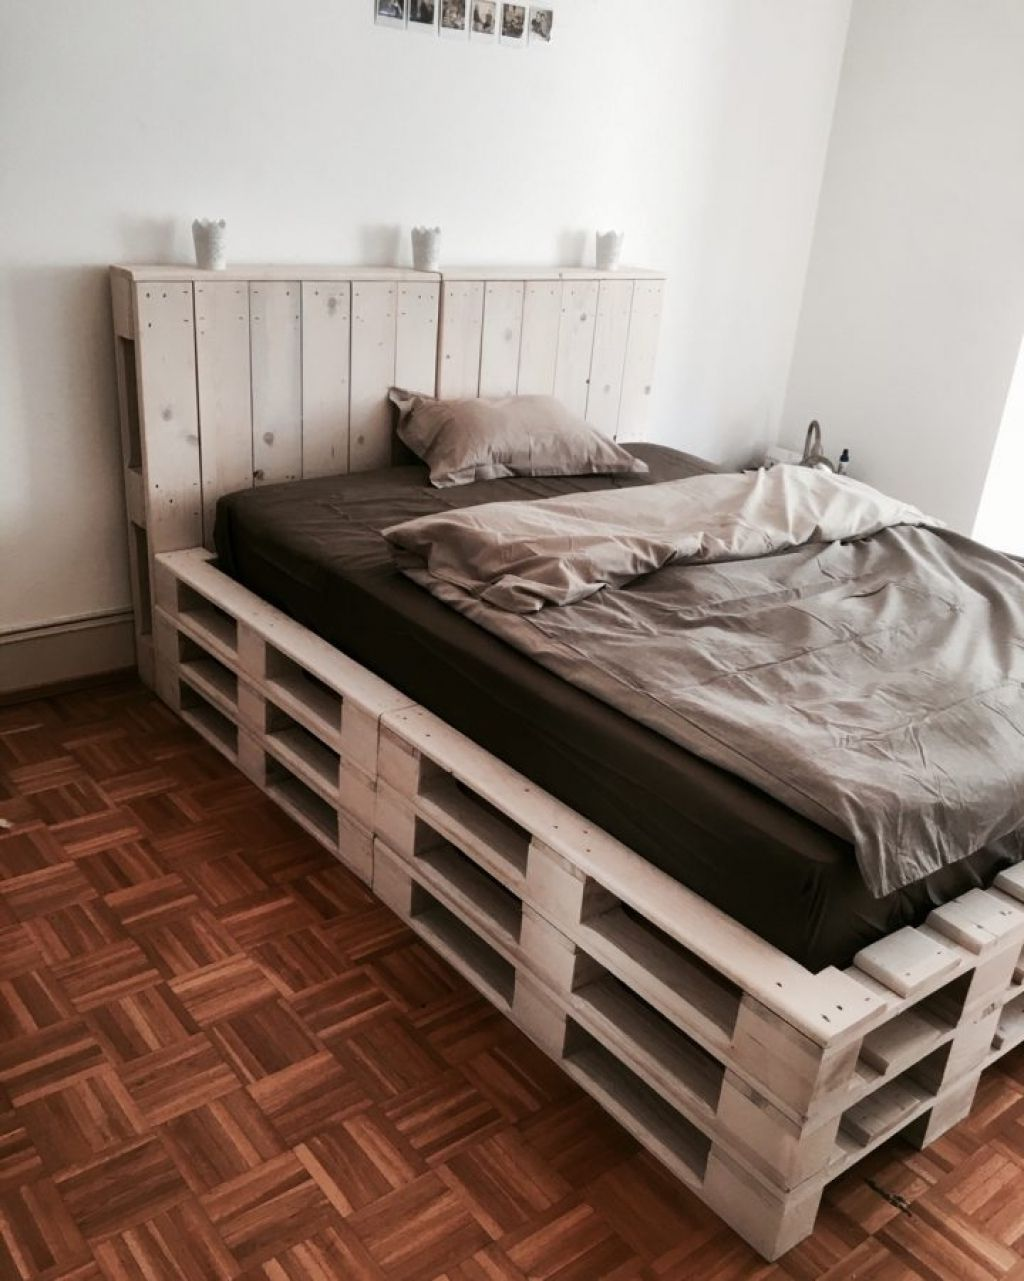 Diy Beds Made Out Of Wooden Pallets Diy Pallet Bed Pallet Beds